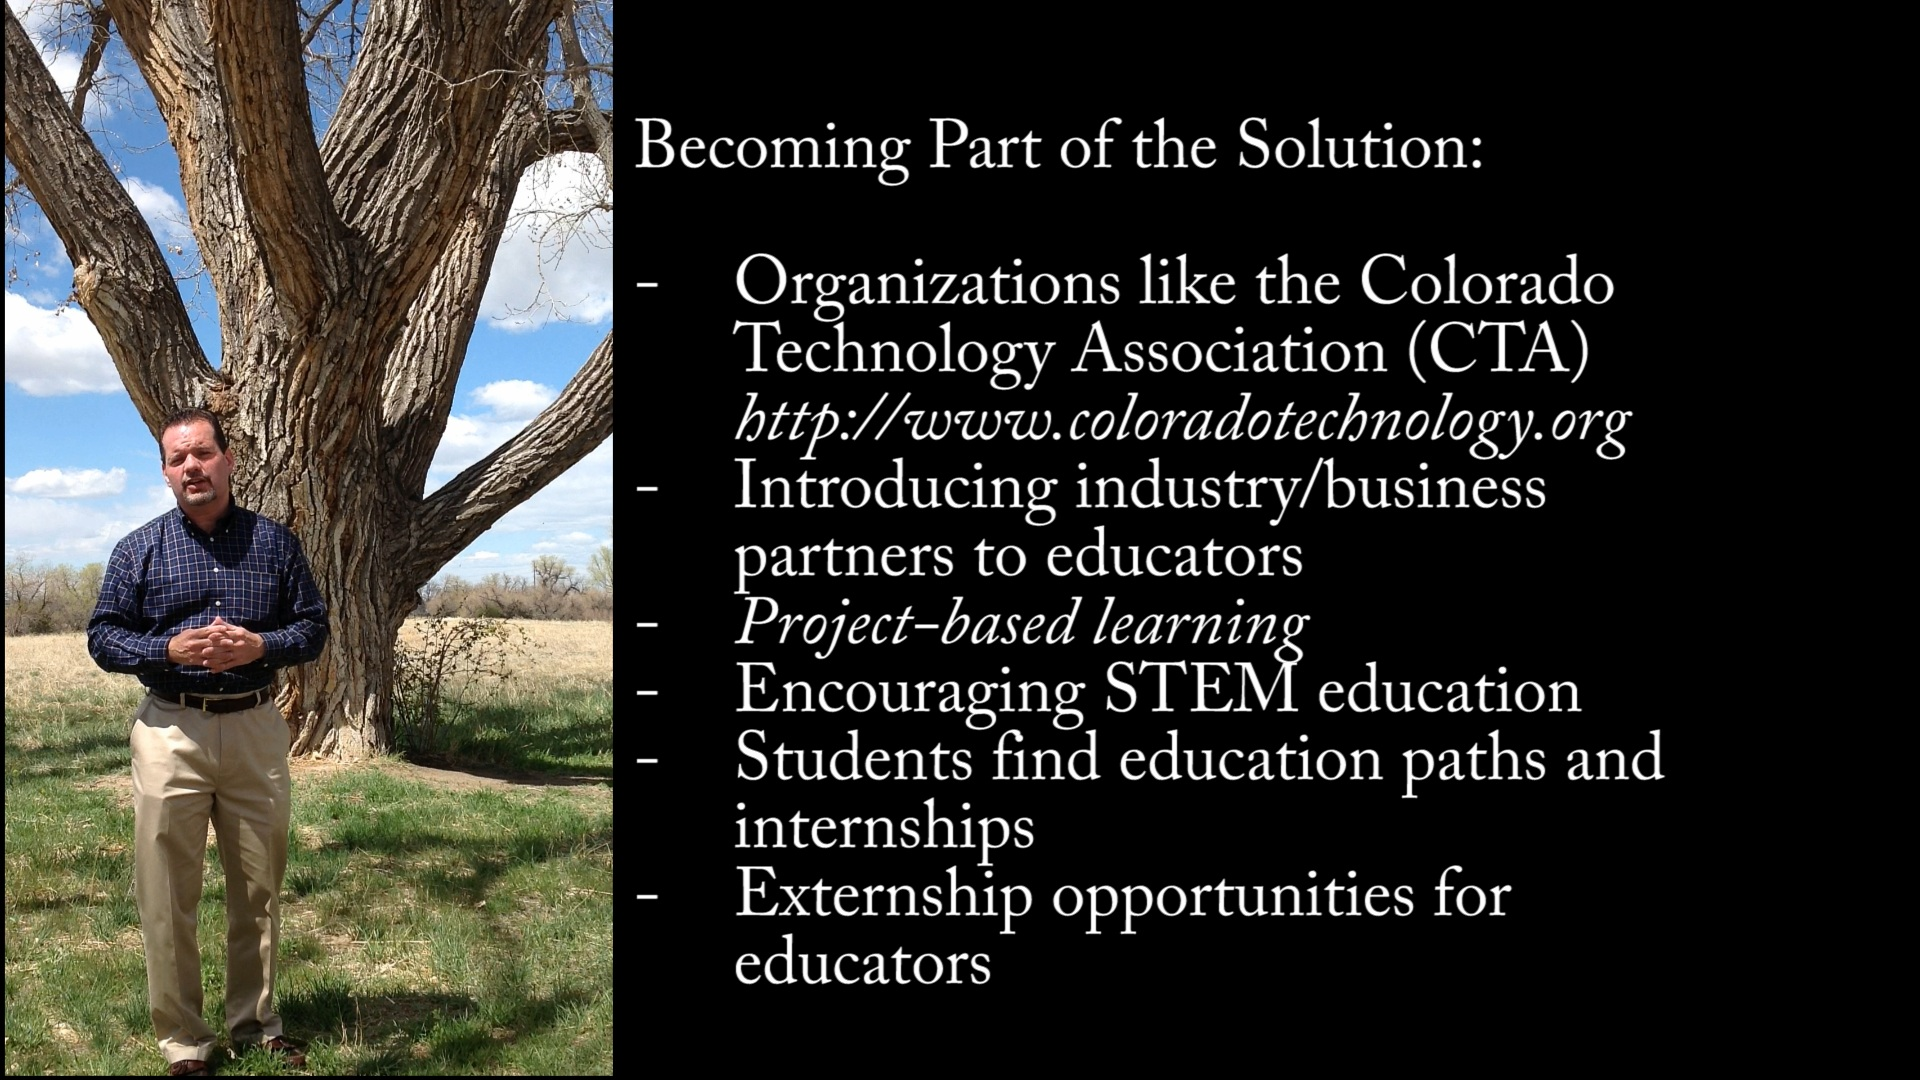 STEM Education, Colorado Paradox and using Project-based learning to educate the next generation